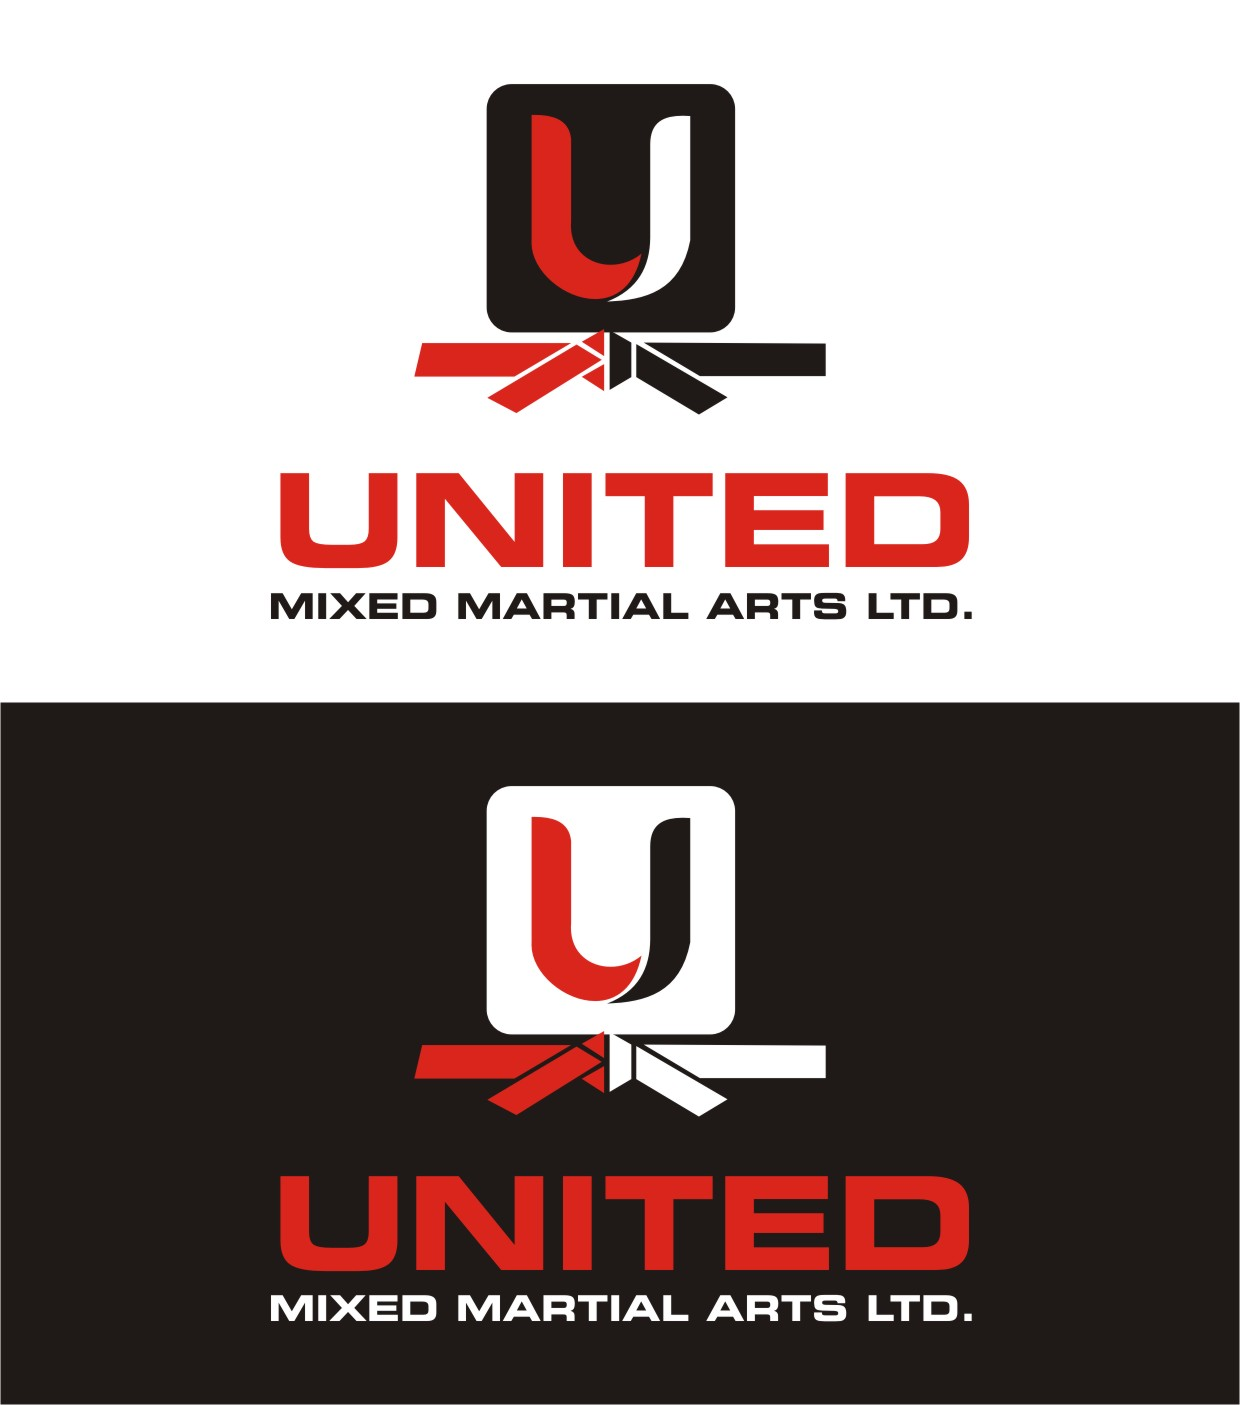 Logo Design by Spider Graphics - Entry No. 107 in the Logo Design Contest Artistic Logo Design for United Mixed Martial Arts Ltd..